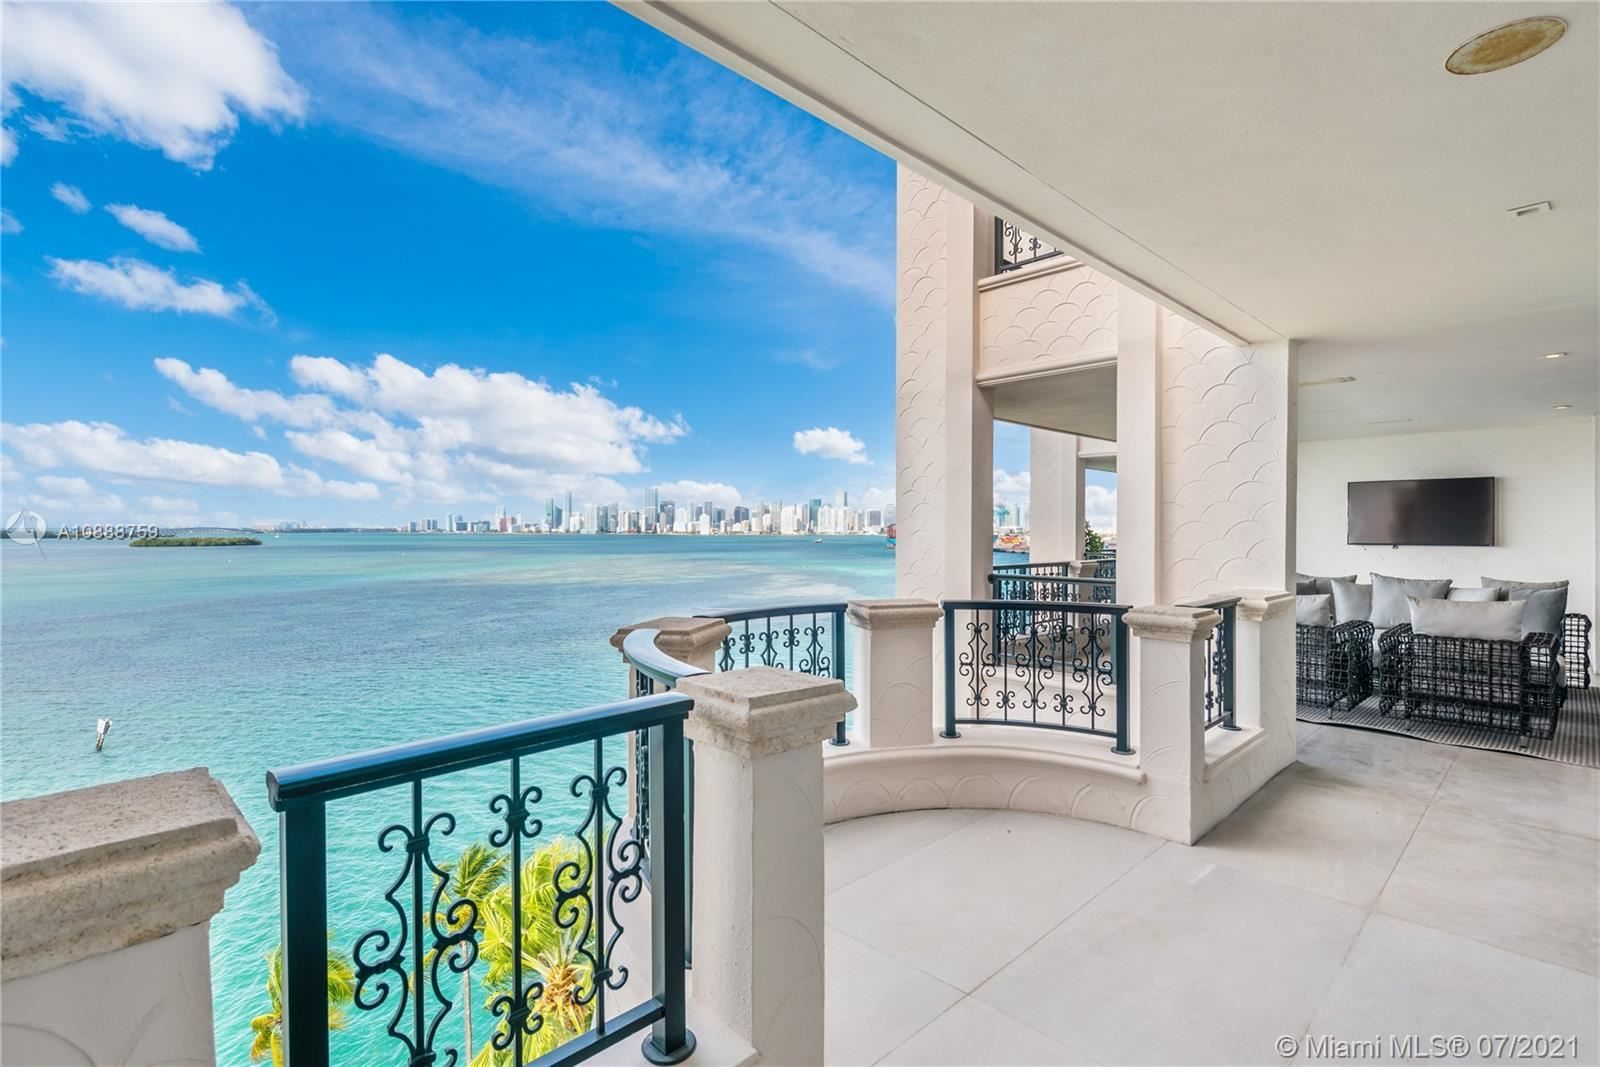 Photo 48 of Listing MLS a10888759 in 5282 Fisher Island Dr #5282 Miami FL 33109